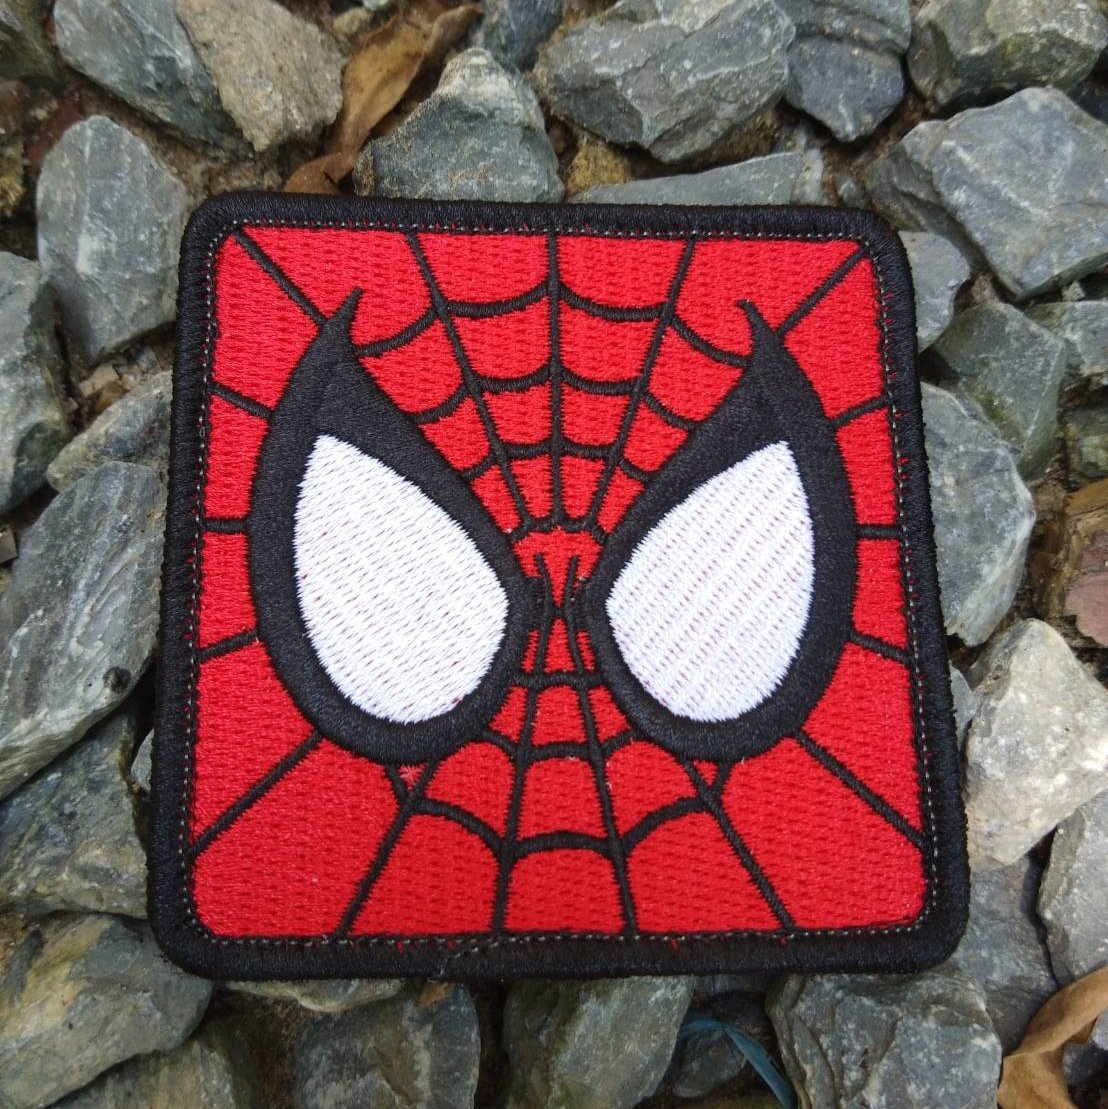 Hook and Loop Fasteners Avengers Spiderman Super Hero 7.5 cm LiZMS Tactical Patch